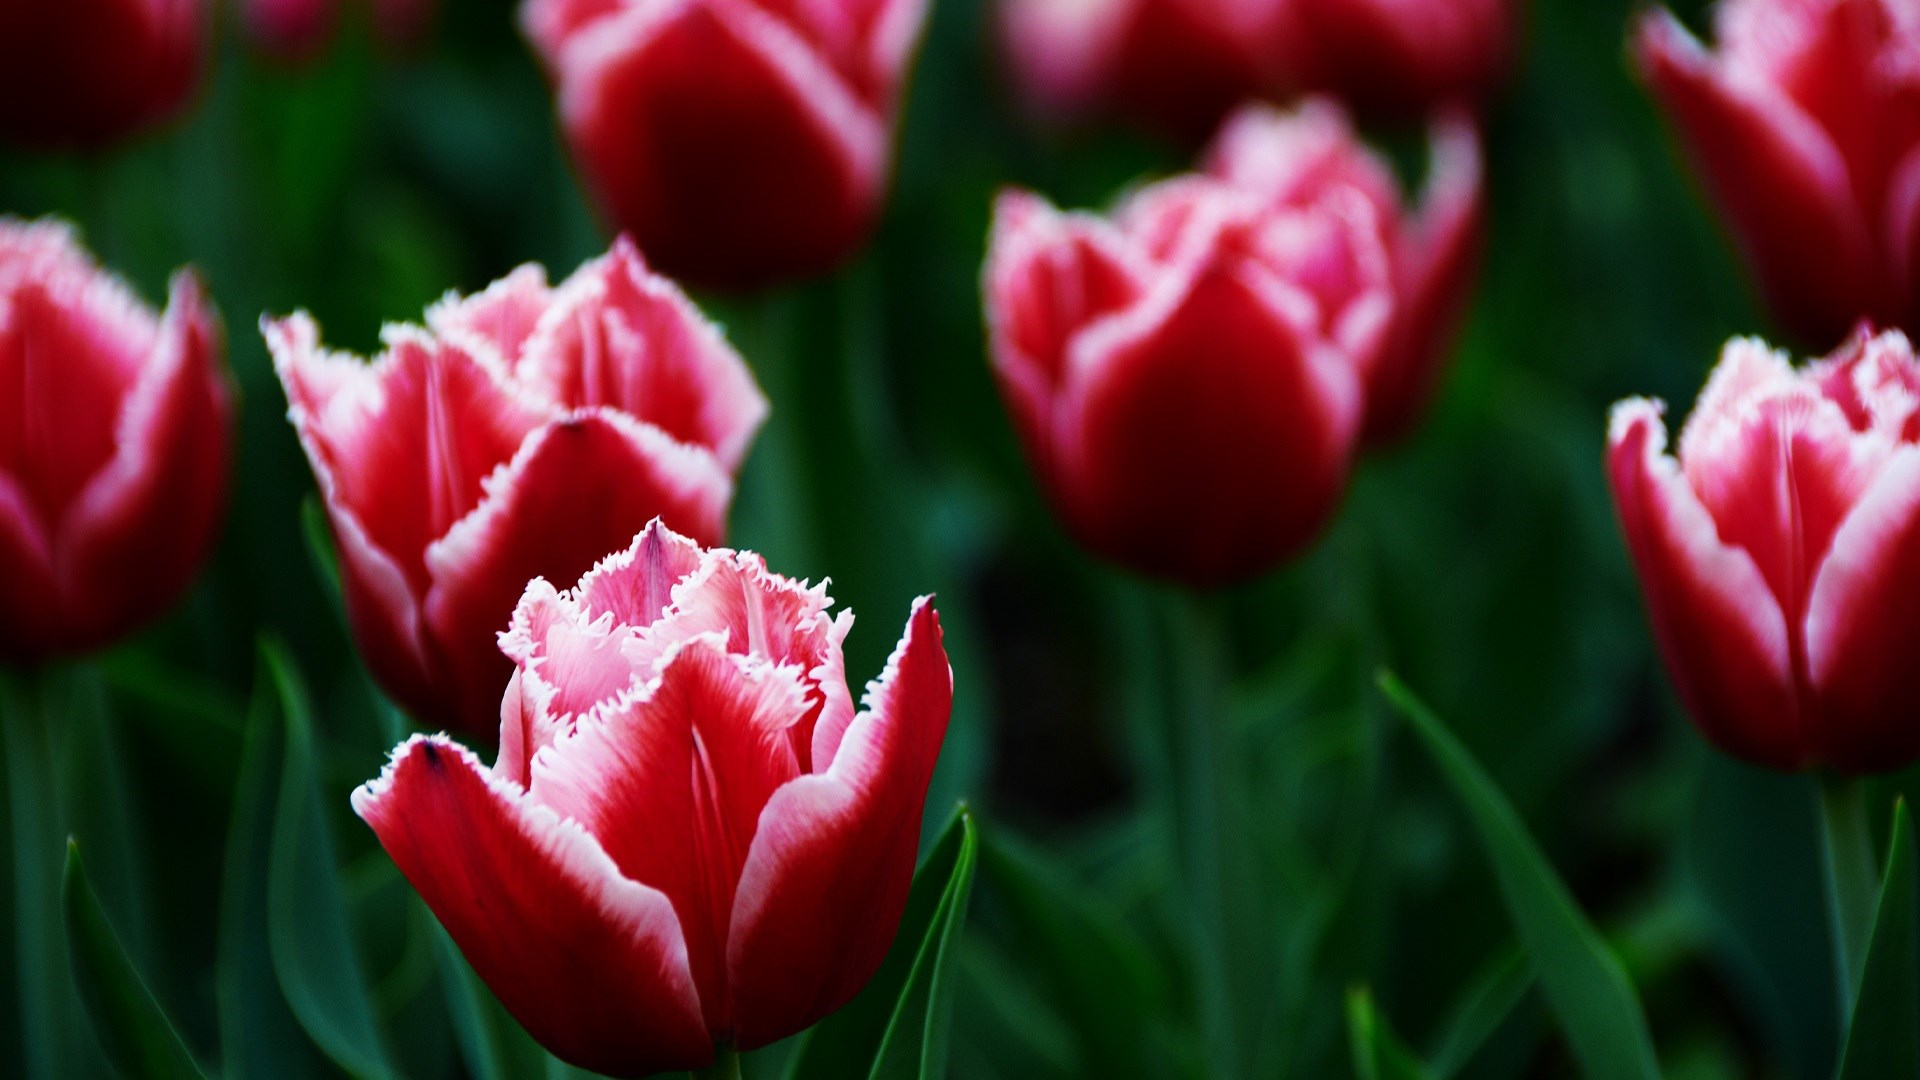 Awesome Tulips Close-Up